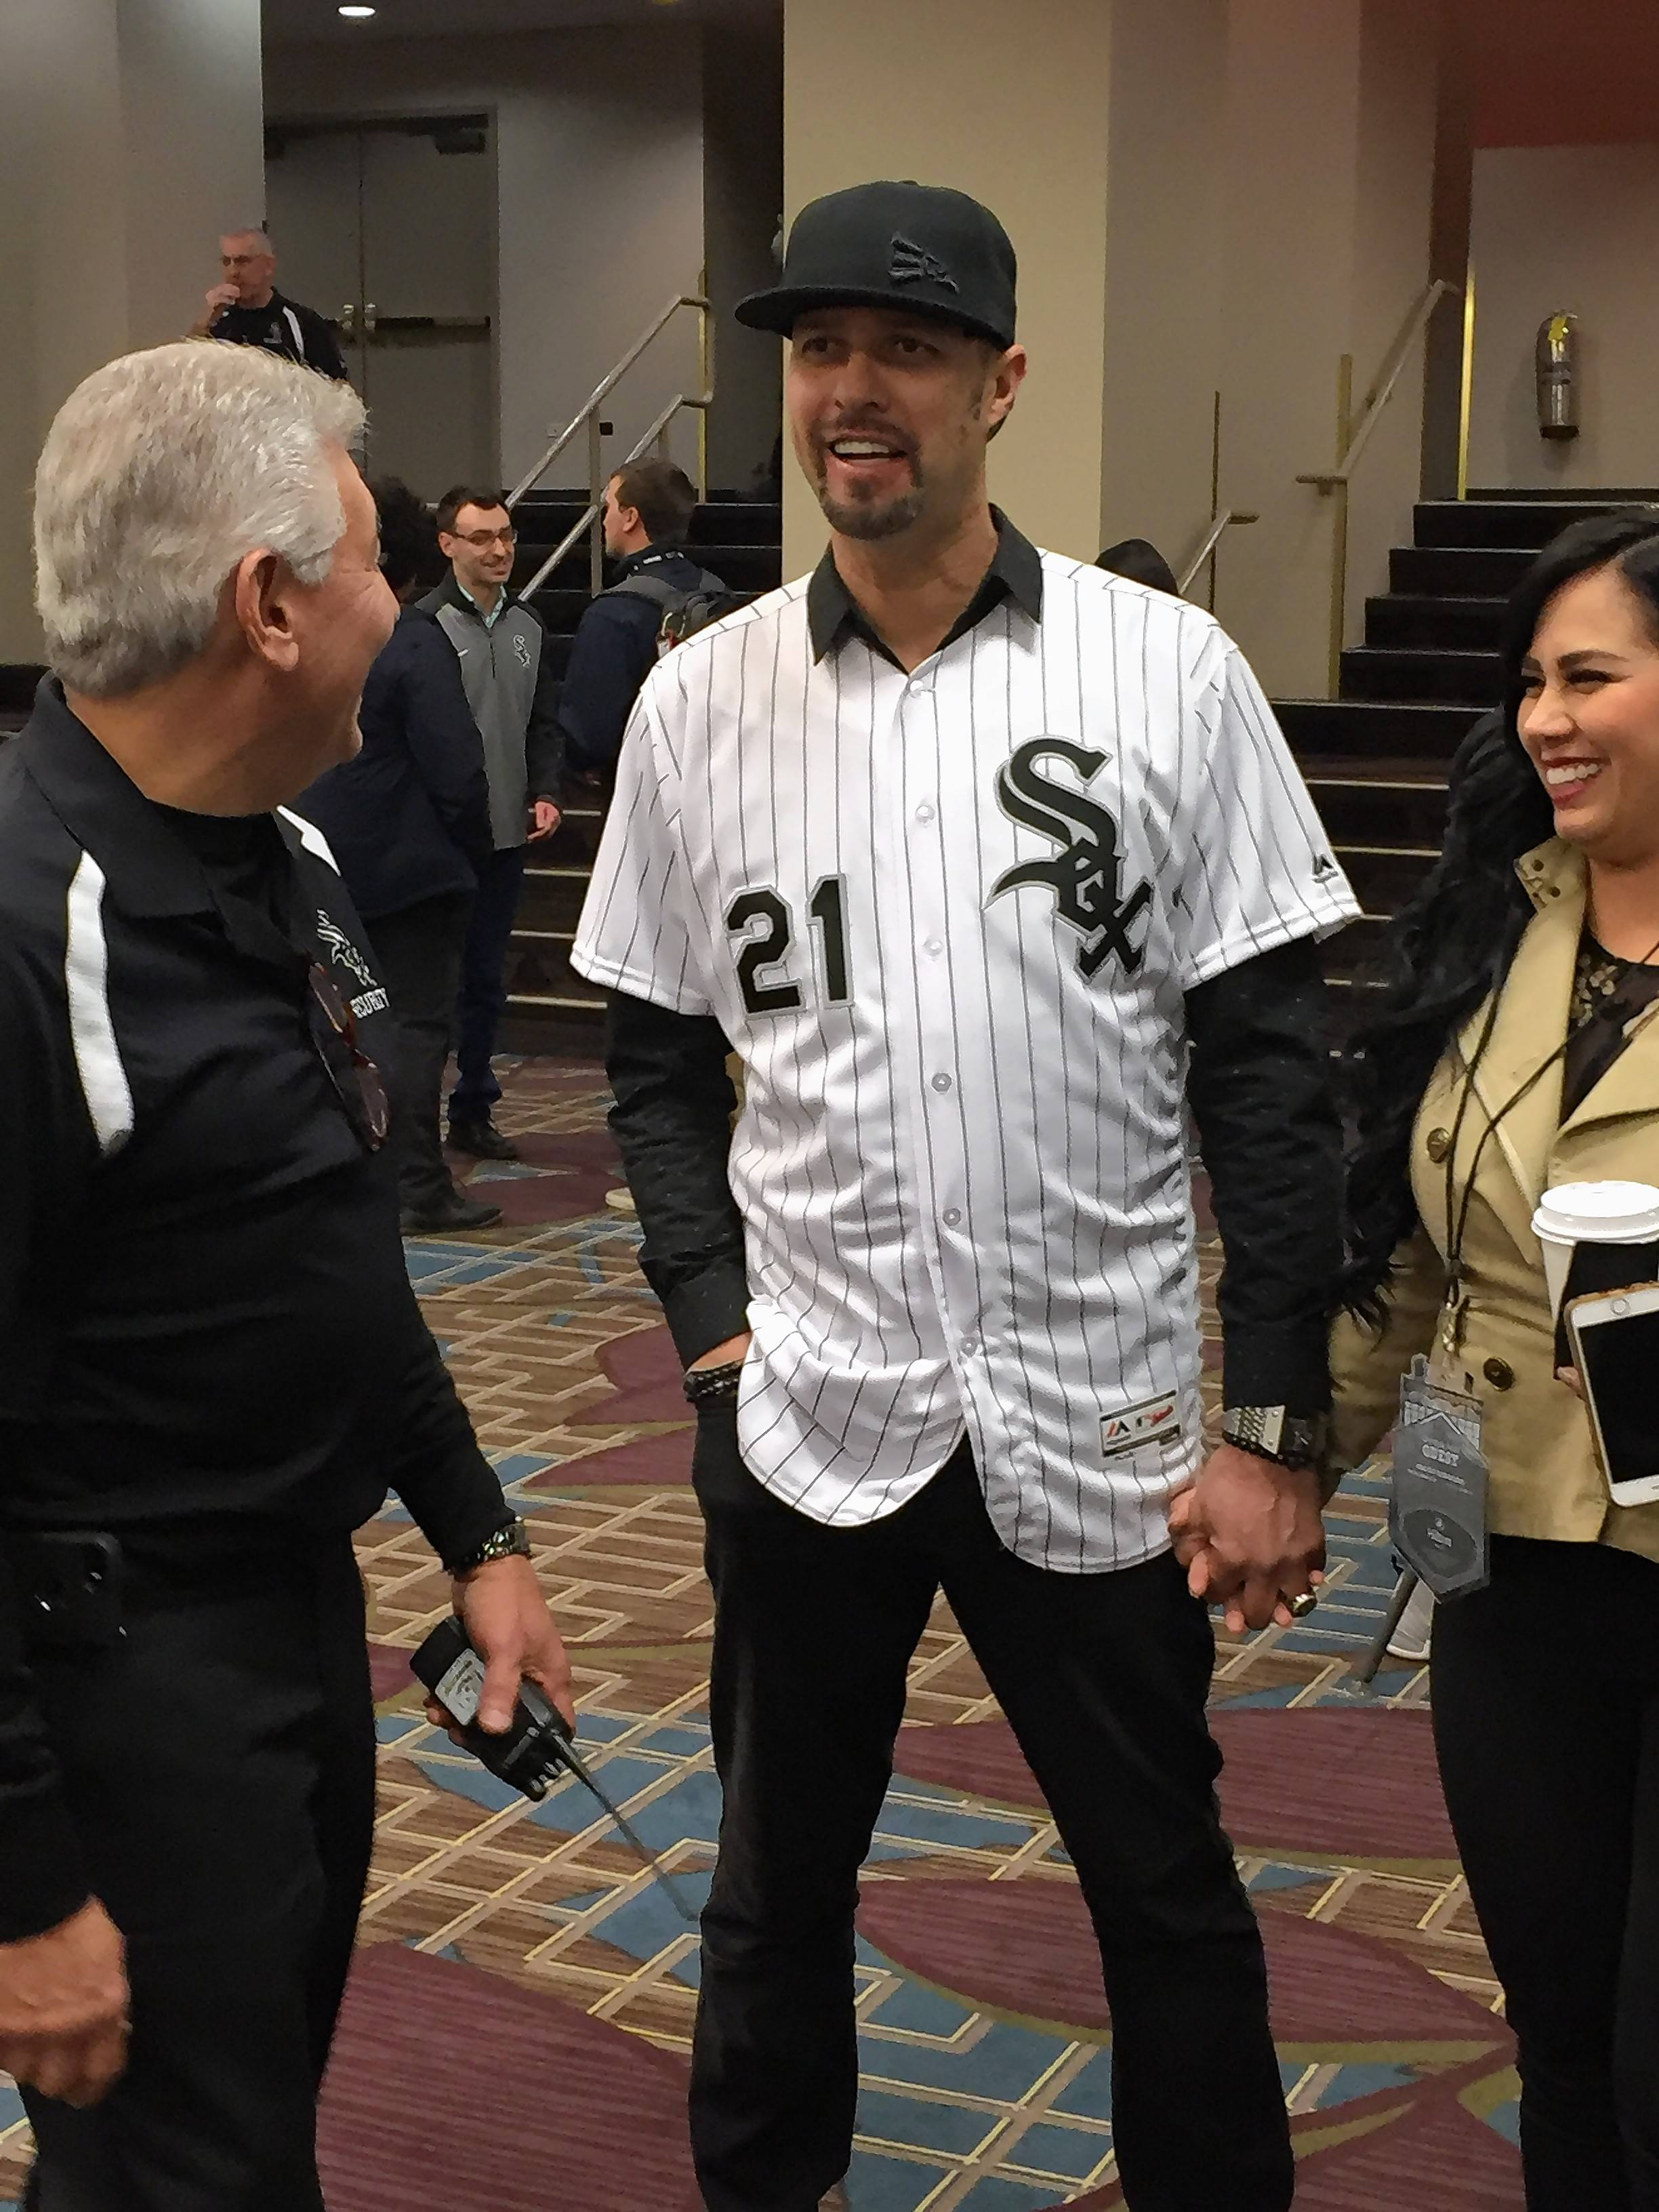 Former White Sox pitcher Esteban Loaiza, center, attended last month's SoxFest convention in Chicago.